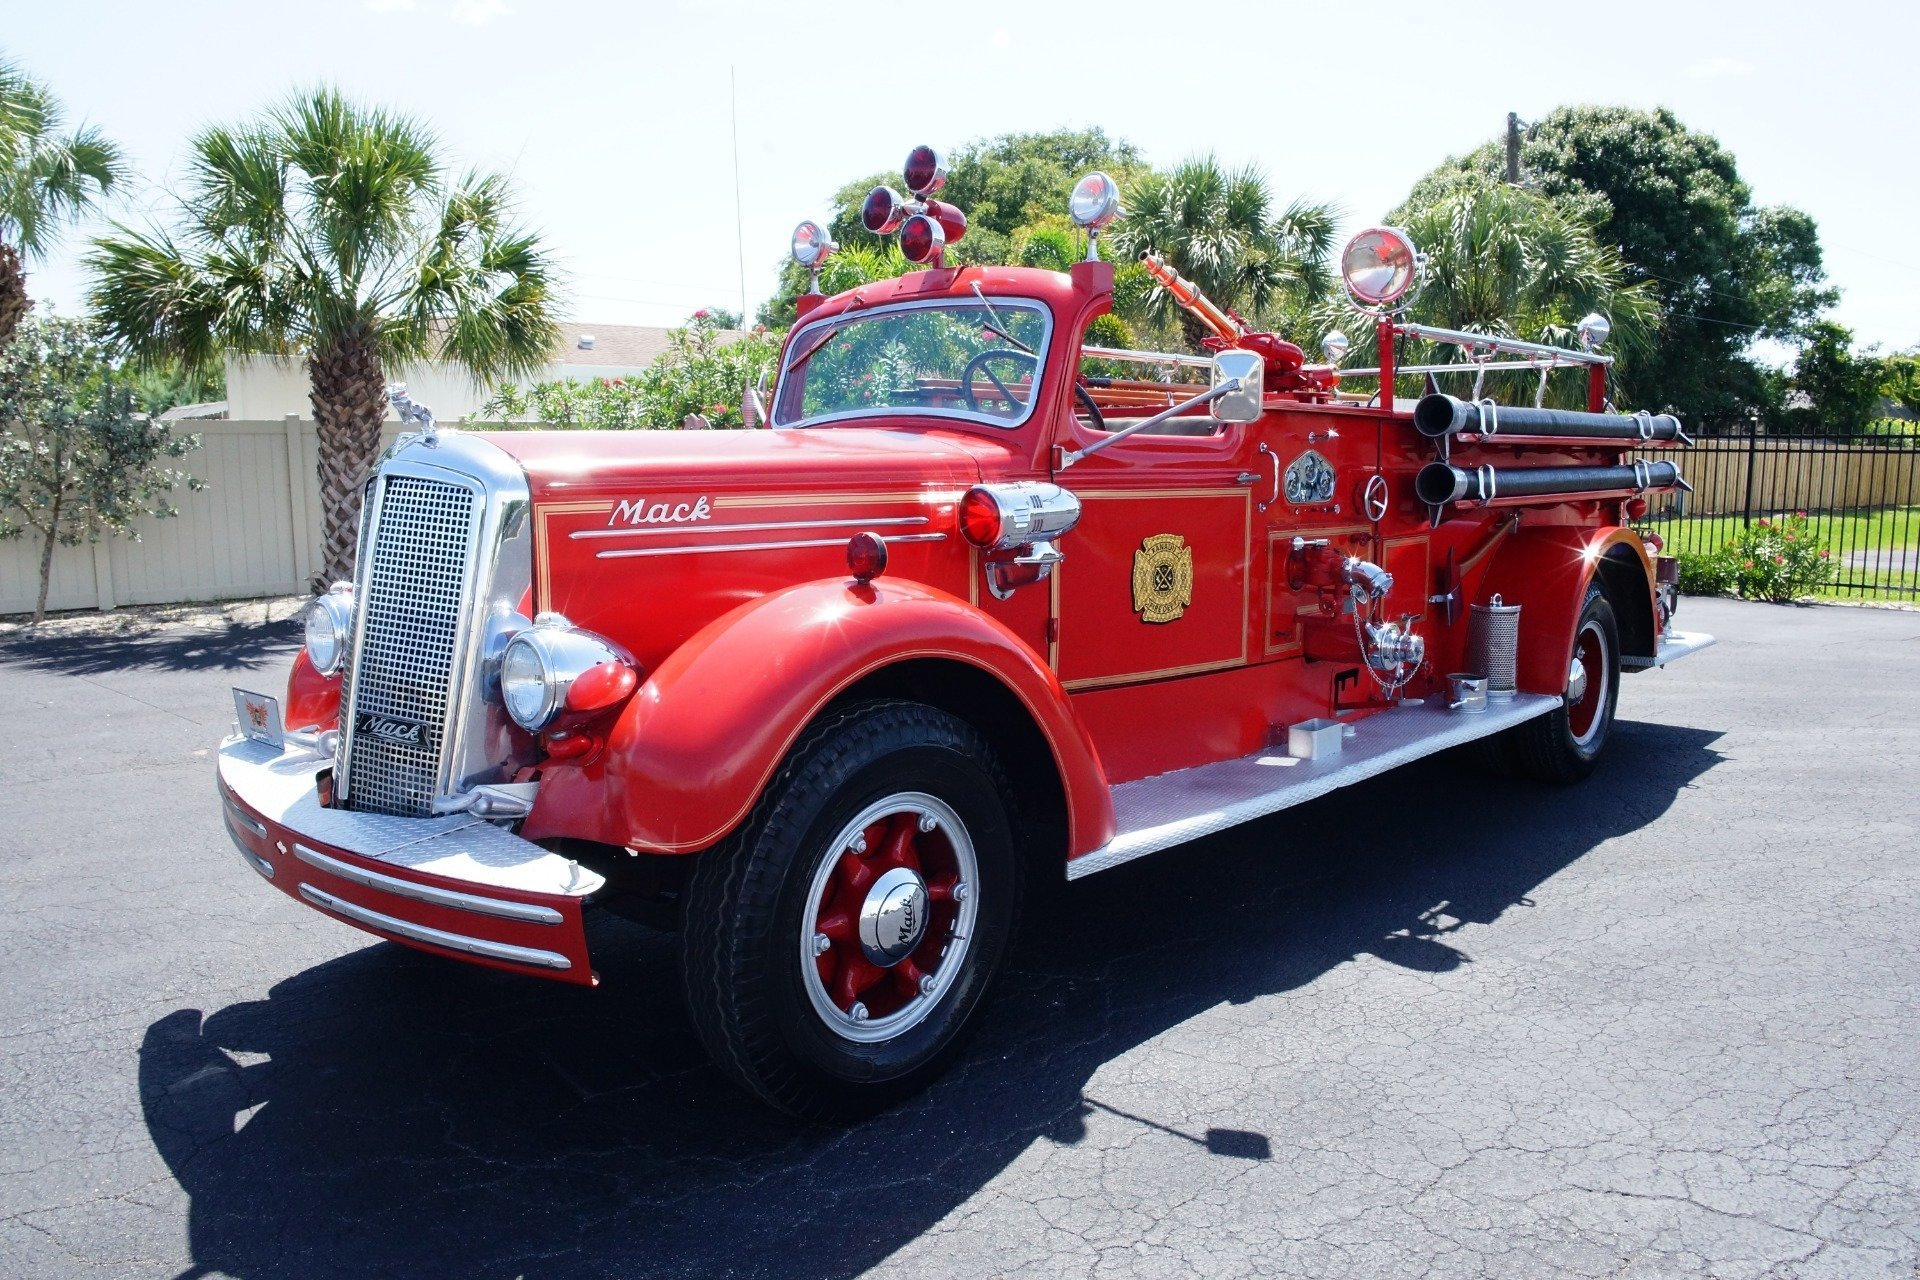 14901174d679 hd 1943 mack model 505 fire truck